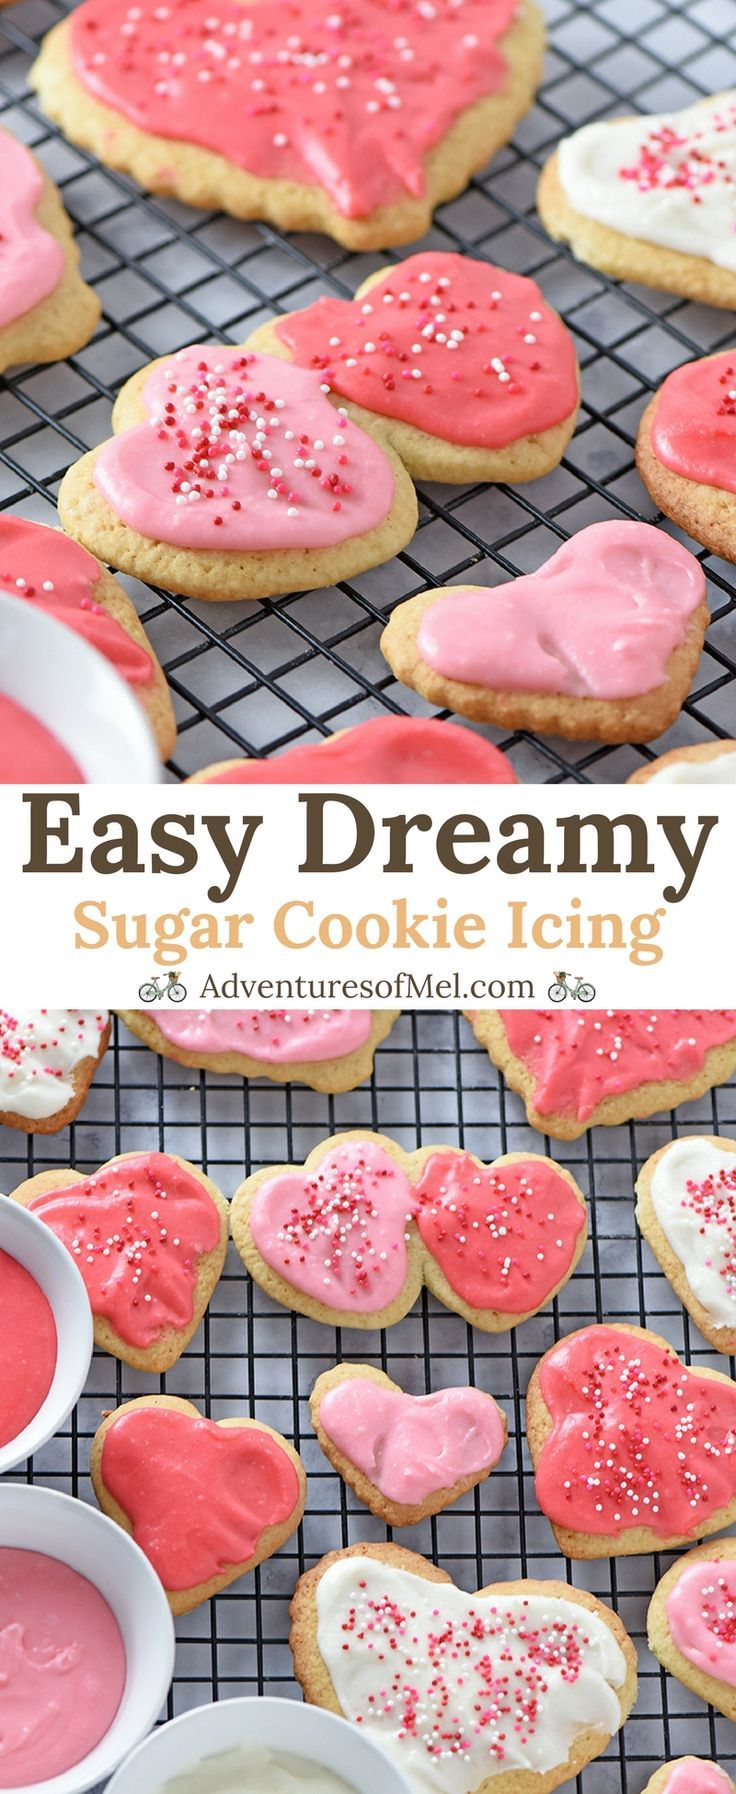 Easy Sugar Cookie Icing that's oh so creamy and scrumptious on holiday cutout sugar cookies. The perfect mix of powdered sugar, cream, butter, vanilla, and almond extract. #icing #ValentinesDay #heartshaped #sugarcookies #cookies #Valentine